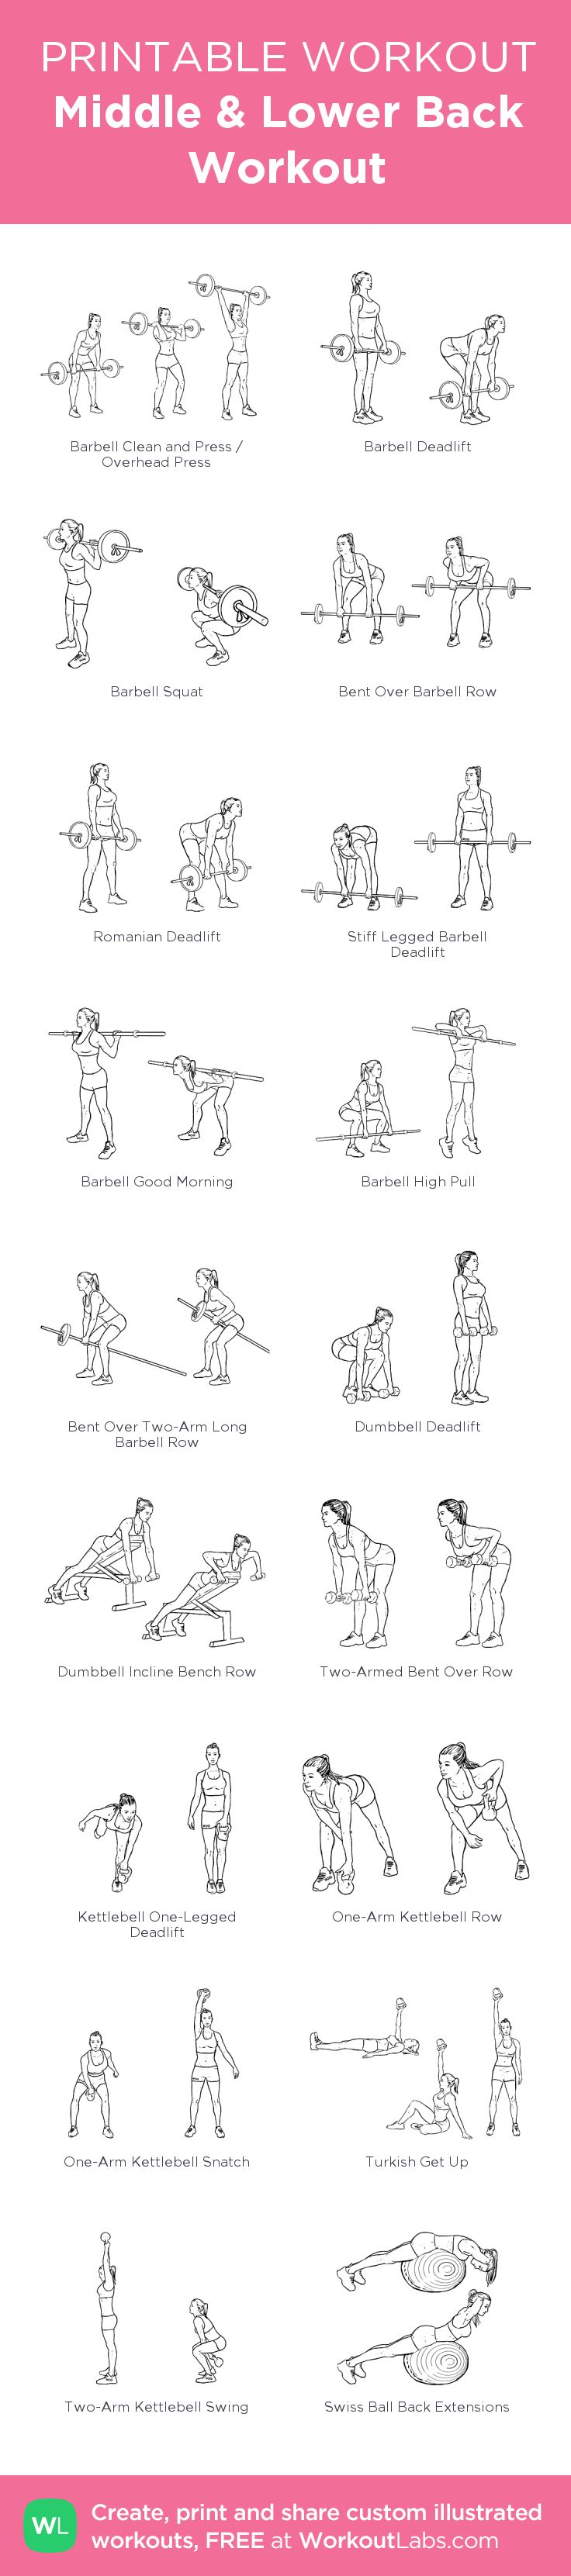 Middle & Lower Back Workout:my visual workout created at WorkoutLabs.com • Click through to customize and download as a FREE PDF! #customworkout